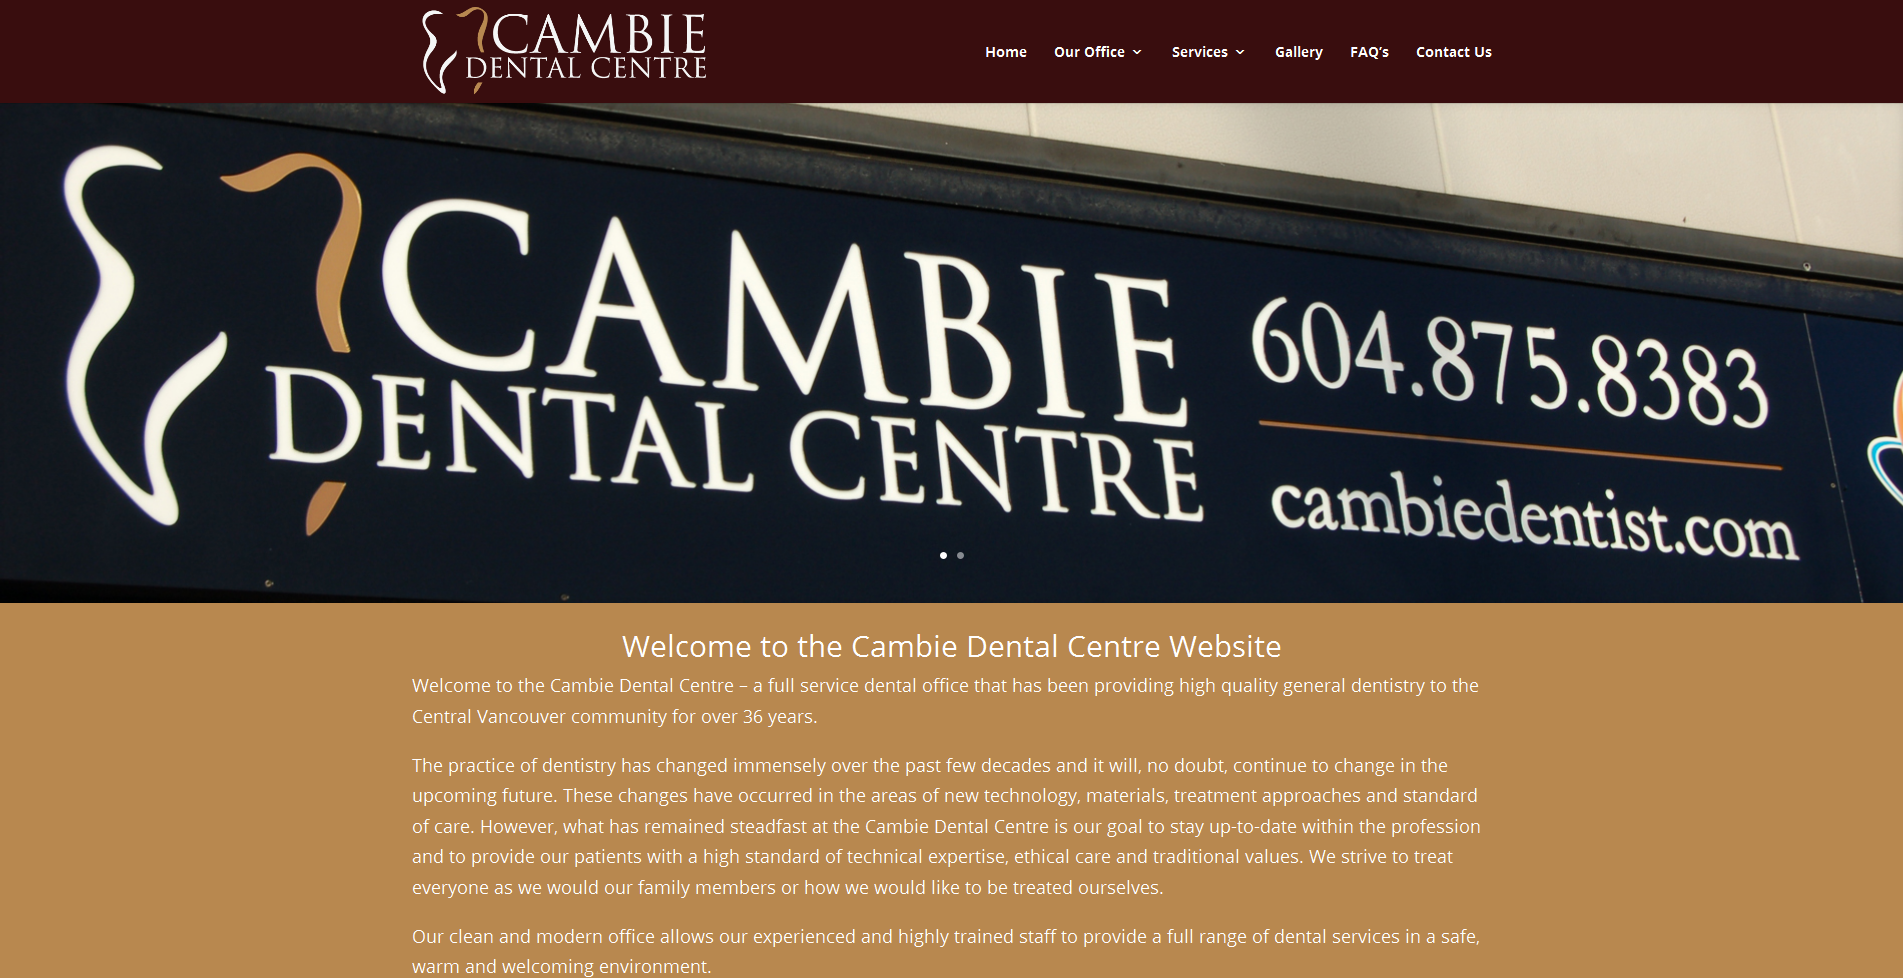 cambie dental centre